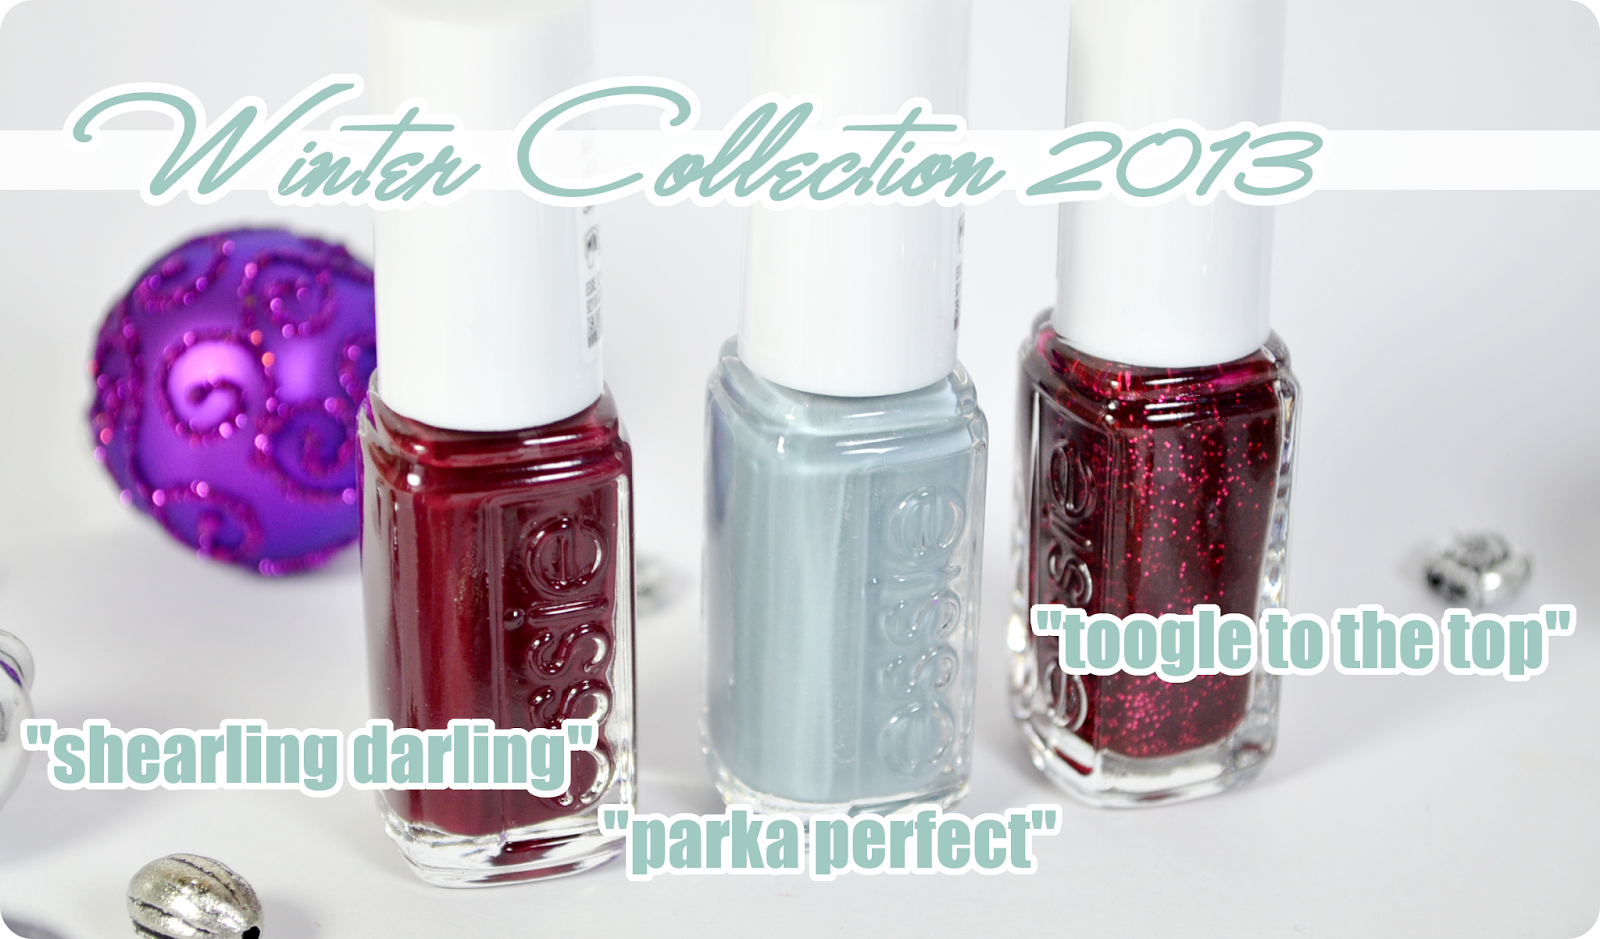 Review essie Winter Collection 2013 - Swatches